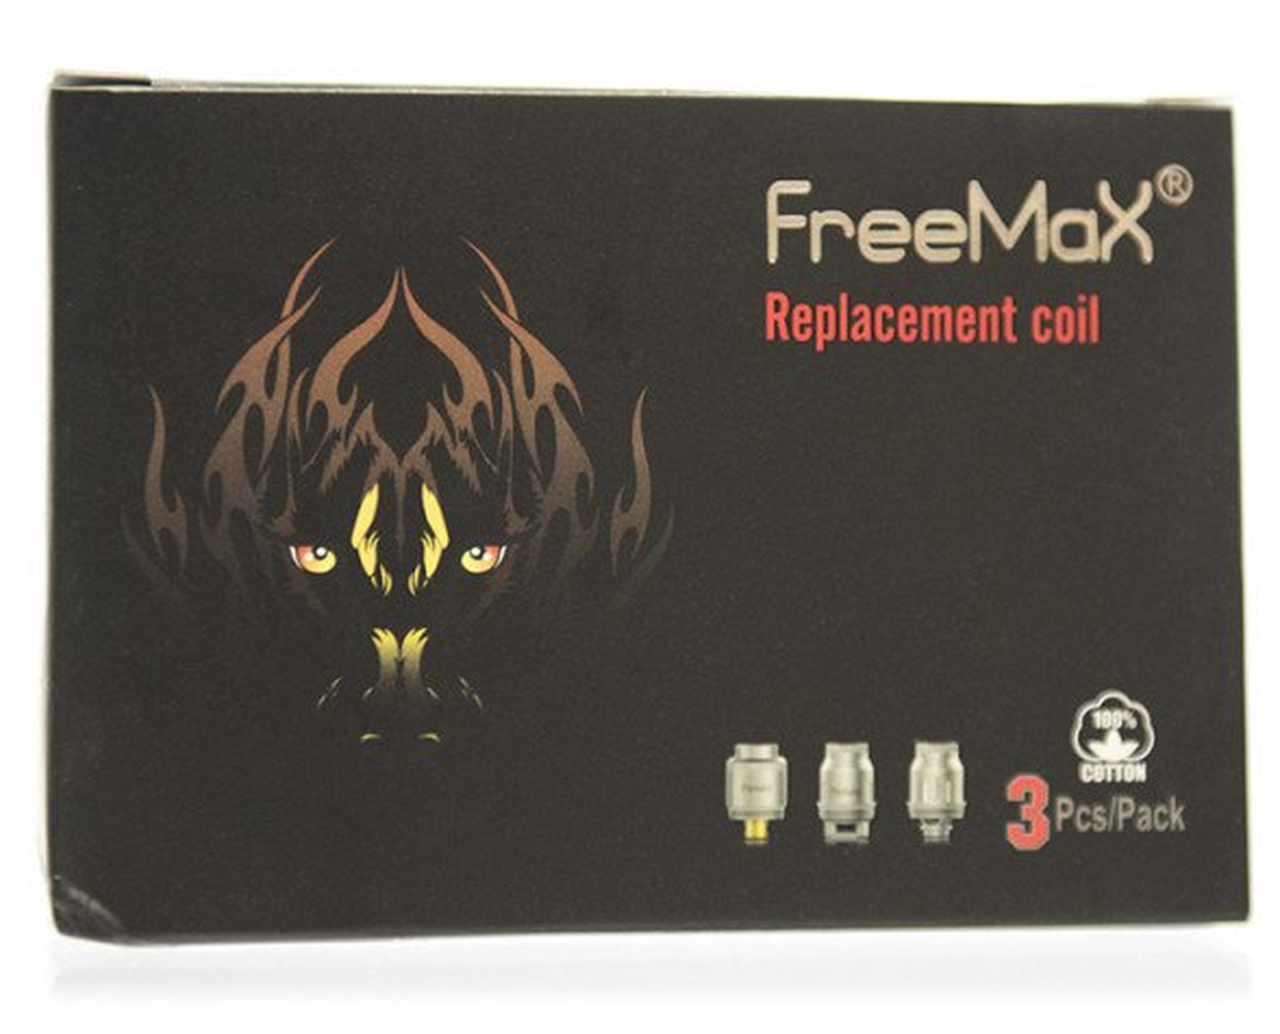 Freemax Fireluke Single Mesh Pro Coil (0.15ohm) - Single